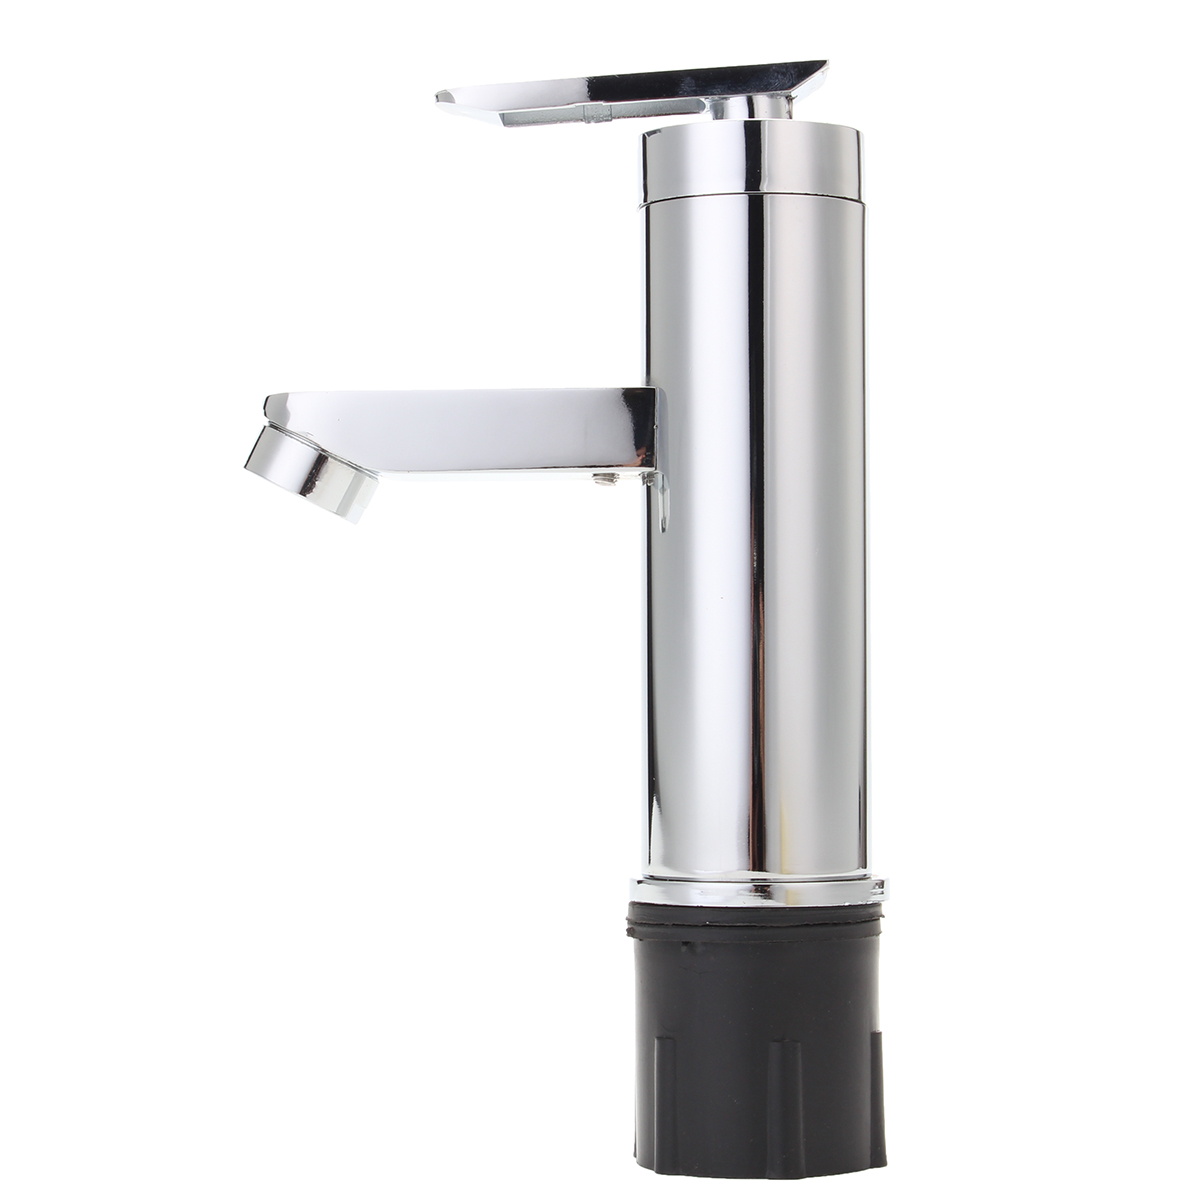 Brass Chrome Waterfall Bathroom Basin Faucet Single Handle Sink Cold & Hot Mixer Tap